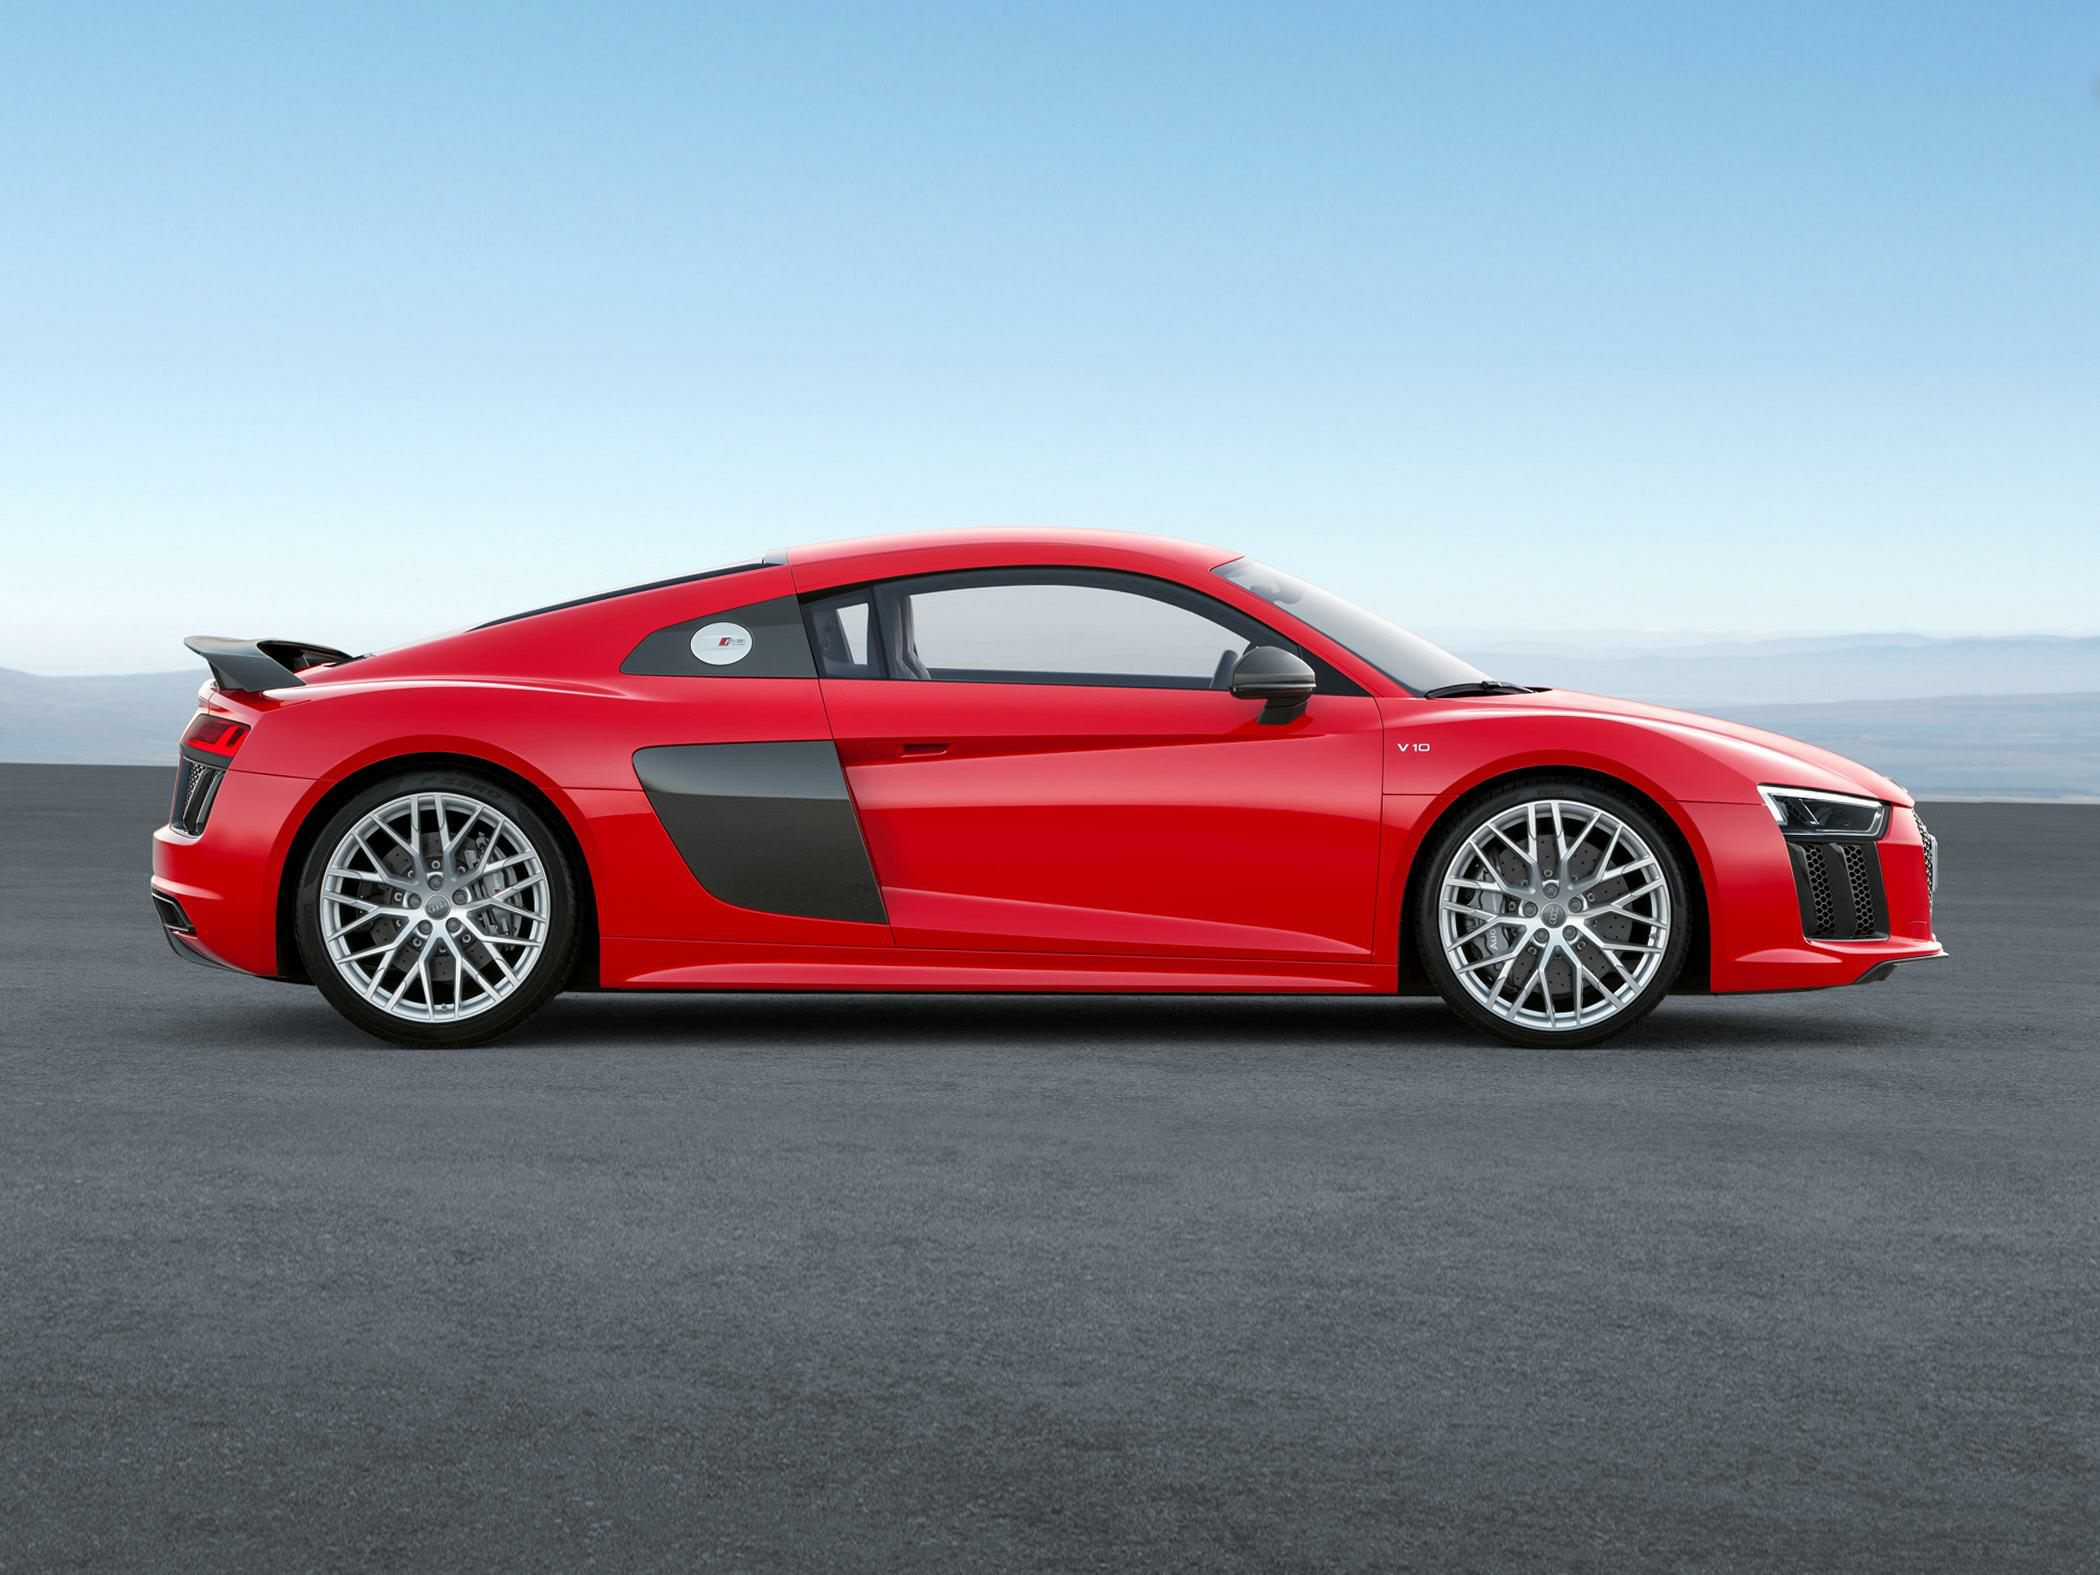 Audi r8 v10 for sale chicago